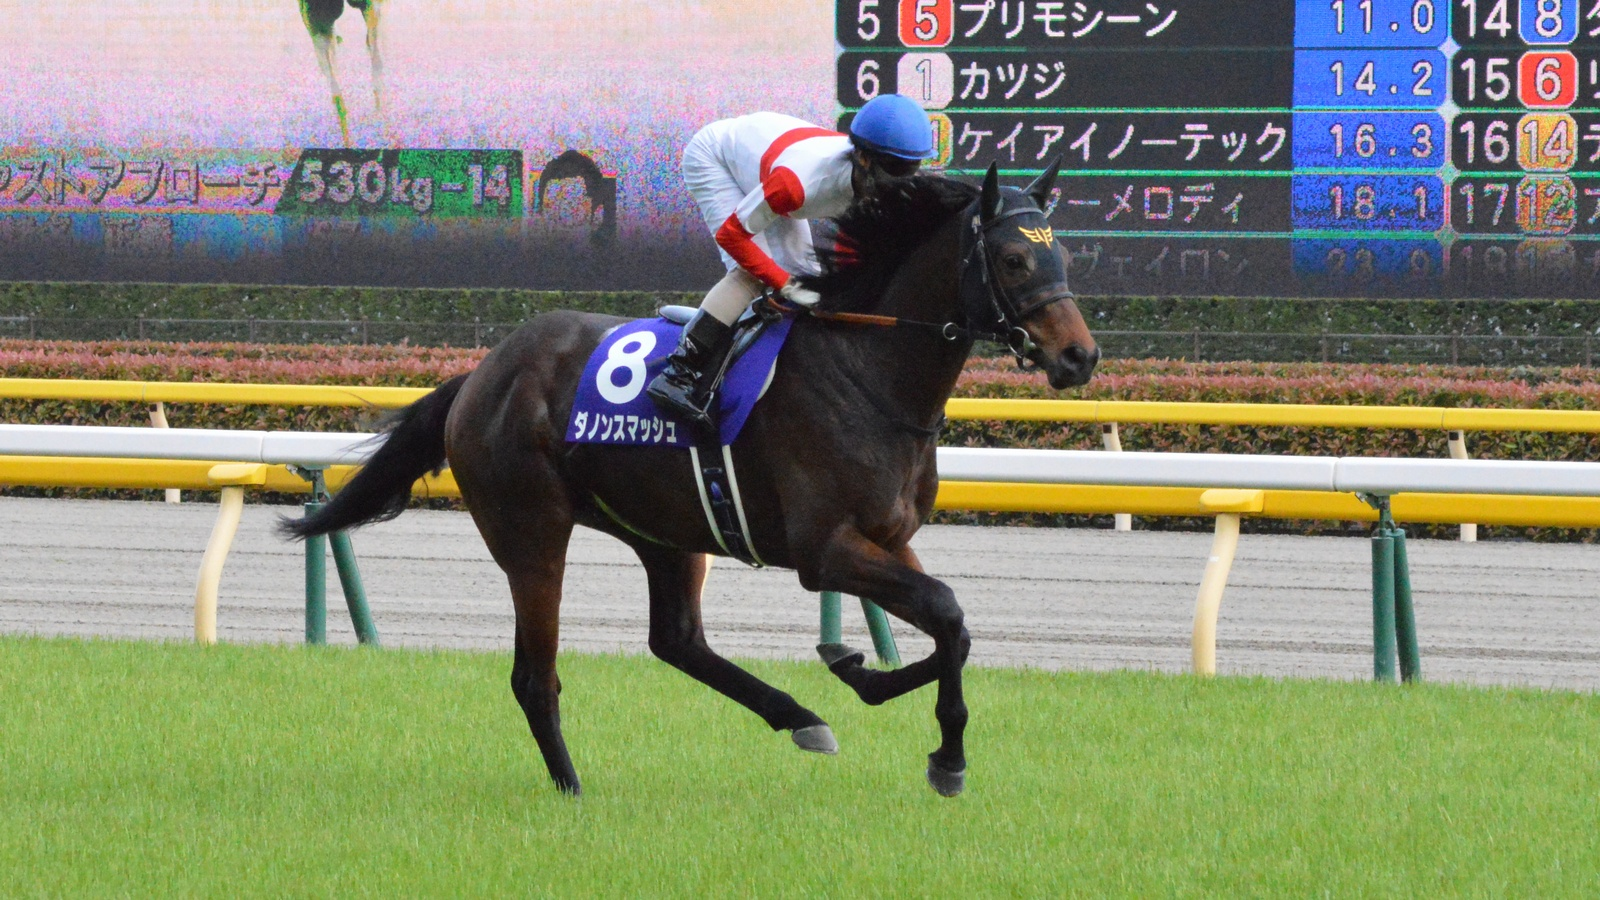 Takamatsunomiya Kinen Betting Odds